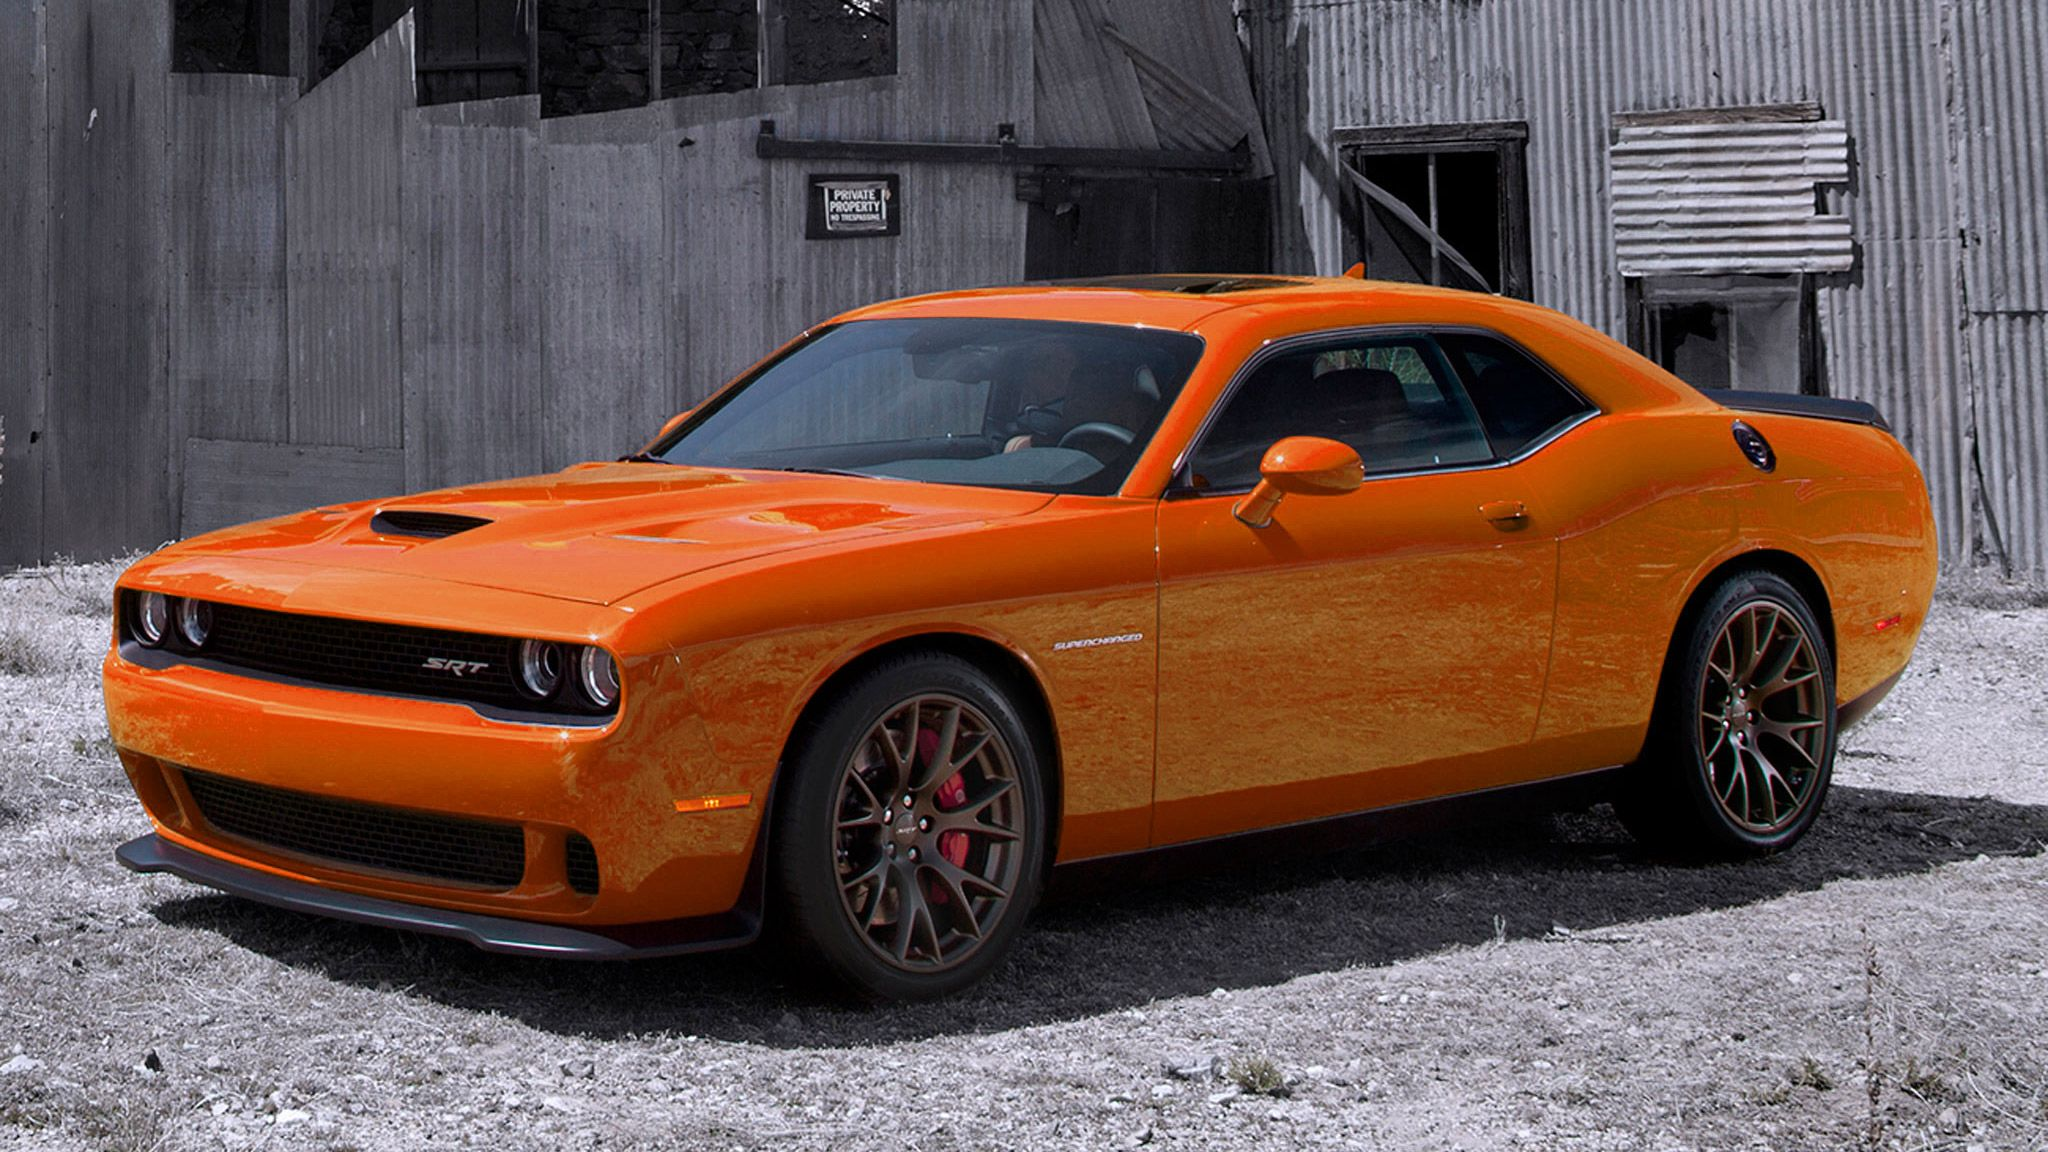 Even though this hellcat is a challenger and not a 4 door charger still love the color and look of this little gem